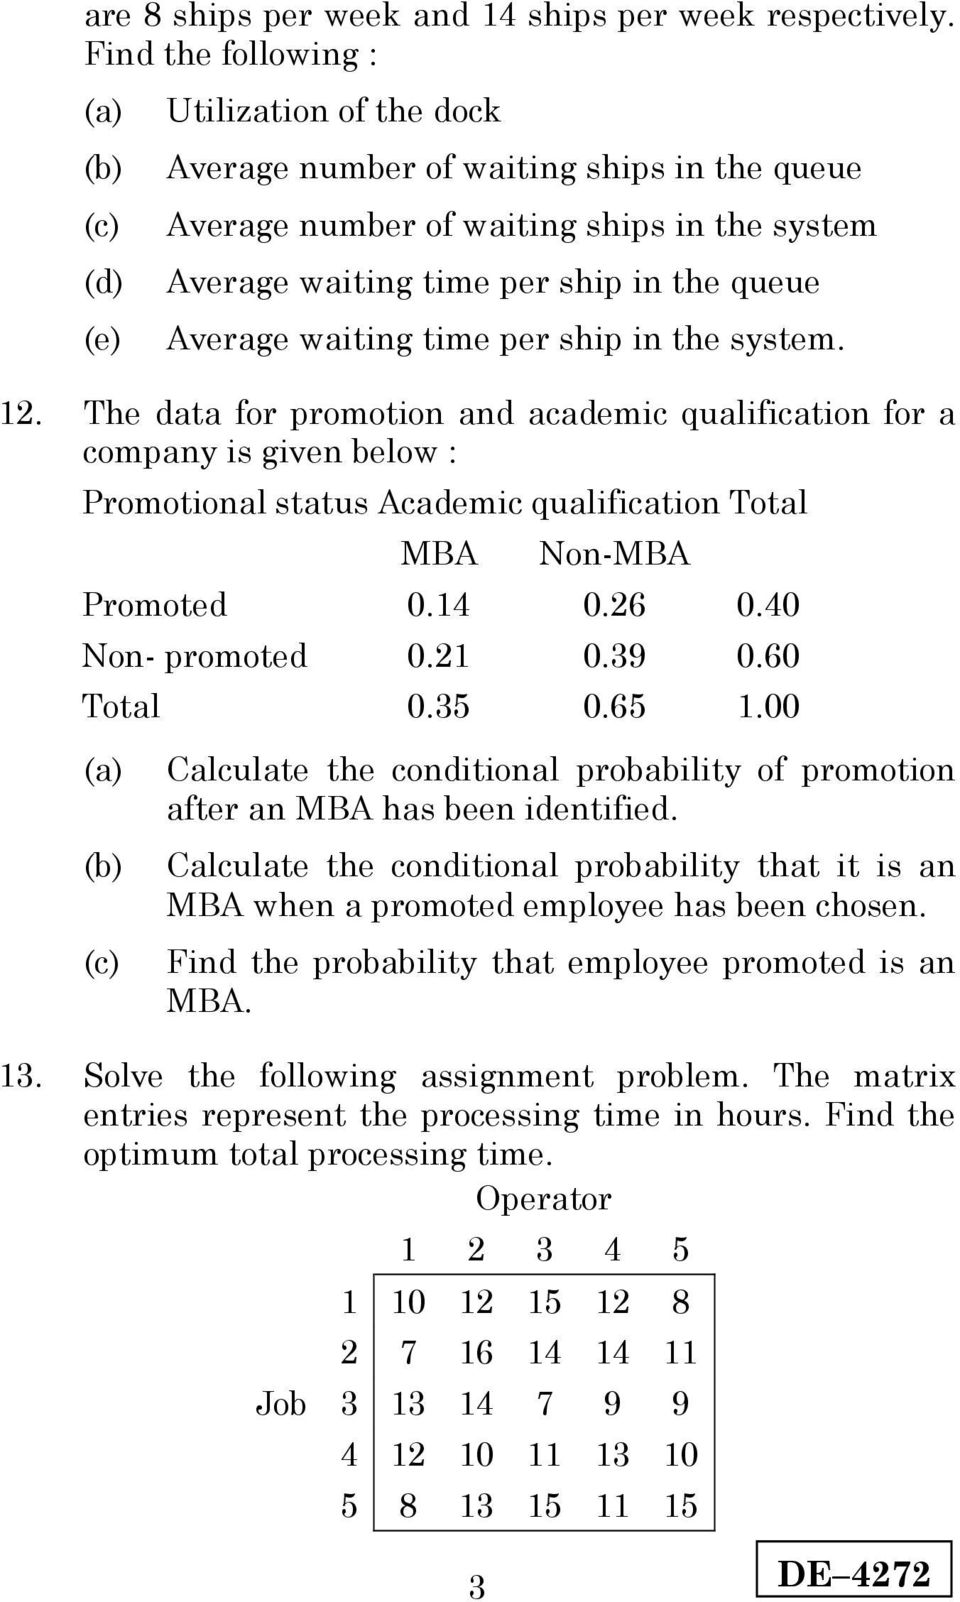 Average waiting time per ship in the system. 1. The data for promotion and academic qualification for a company is given below : Promotional status Academic qualification Total MBA Non-MBA Promoted 0.